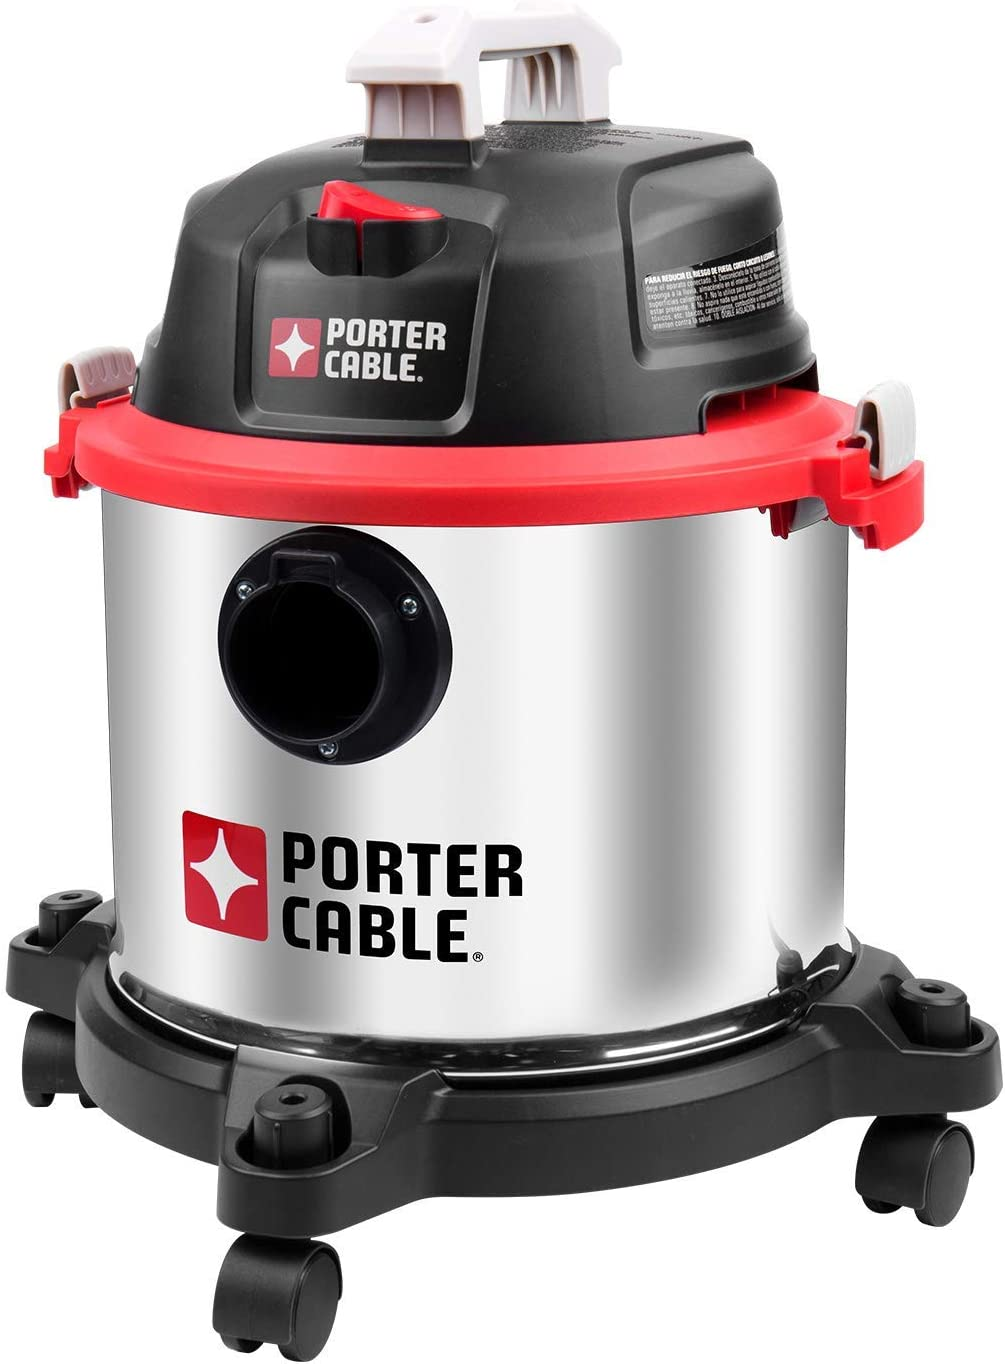 PORTER-CABLE Wet/Dry Vacuum, 5 Gallon, 4 Horsepower Stainless Steel Shop Vac PCX18406-5B